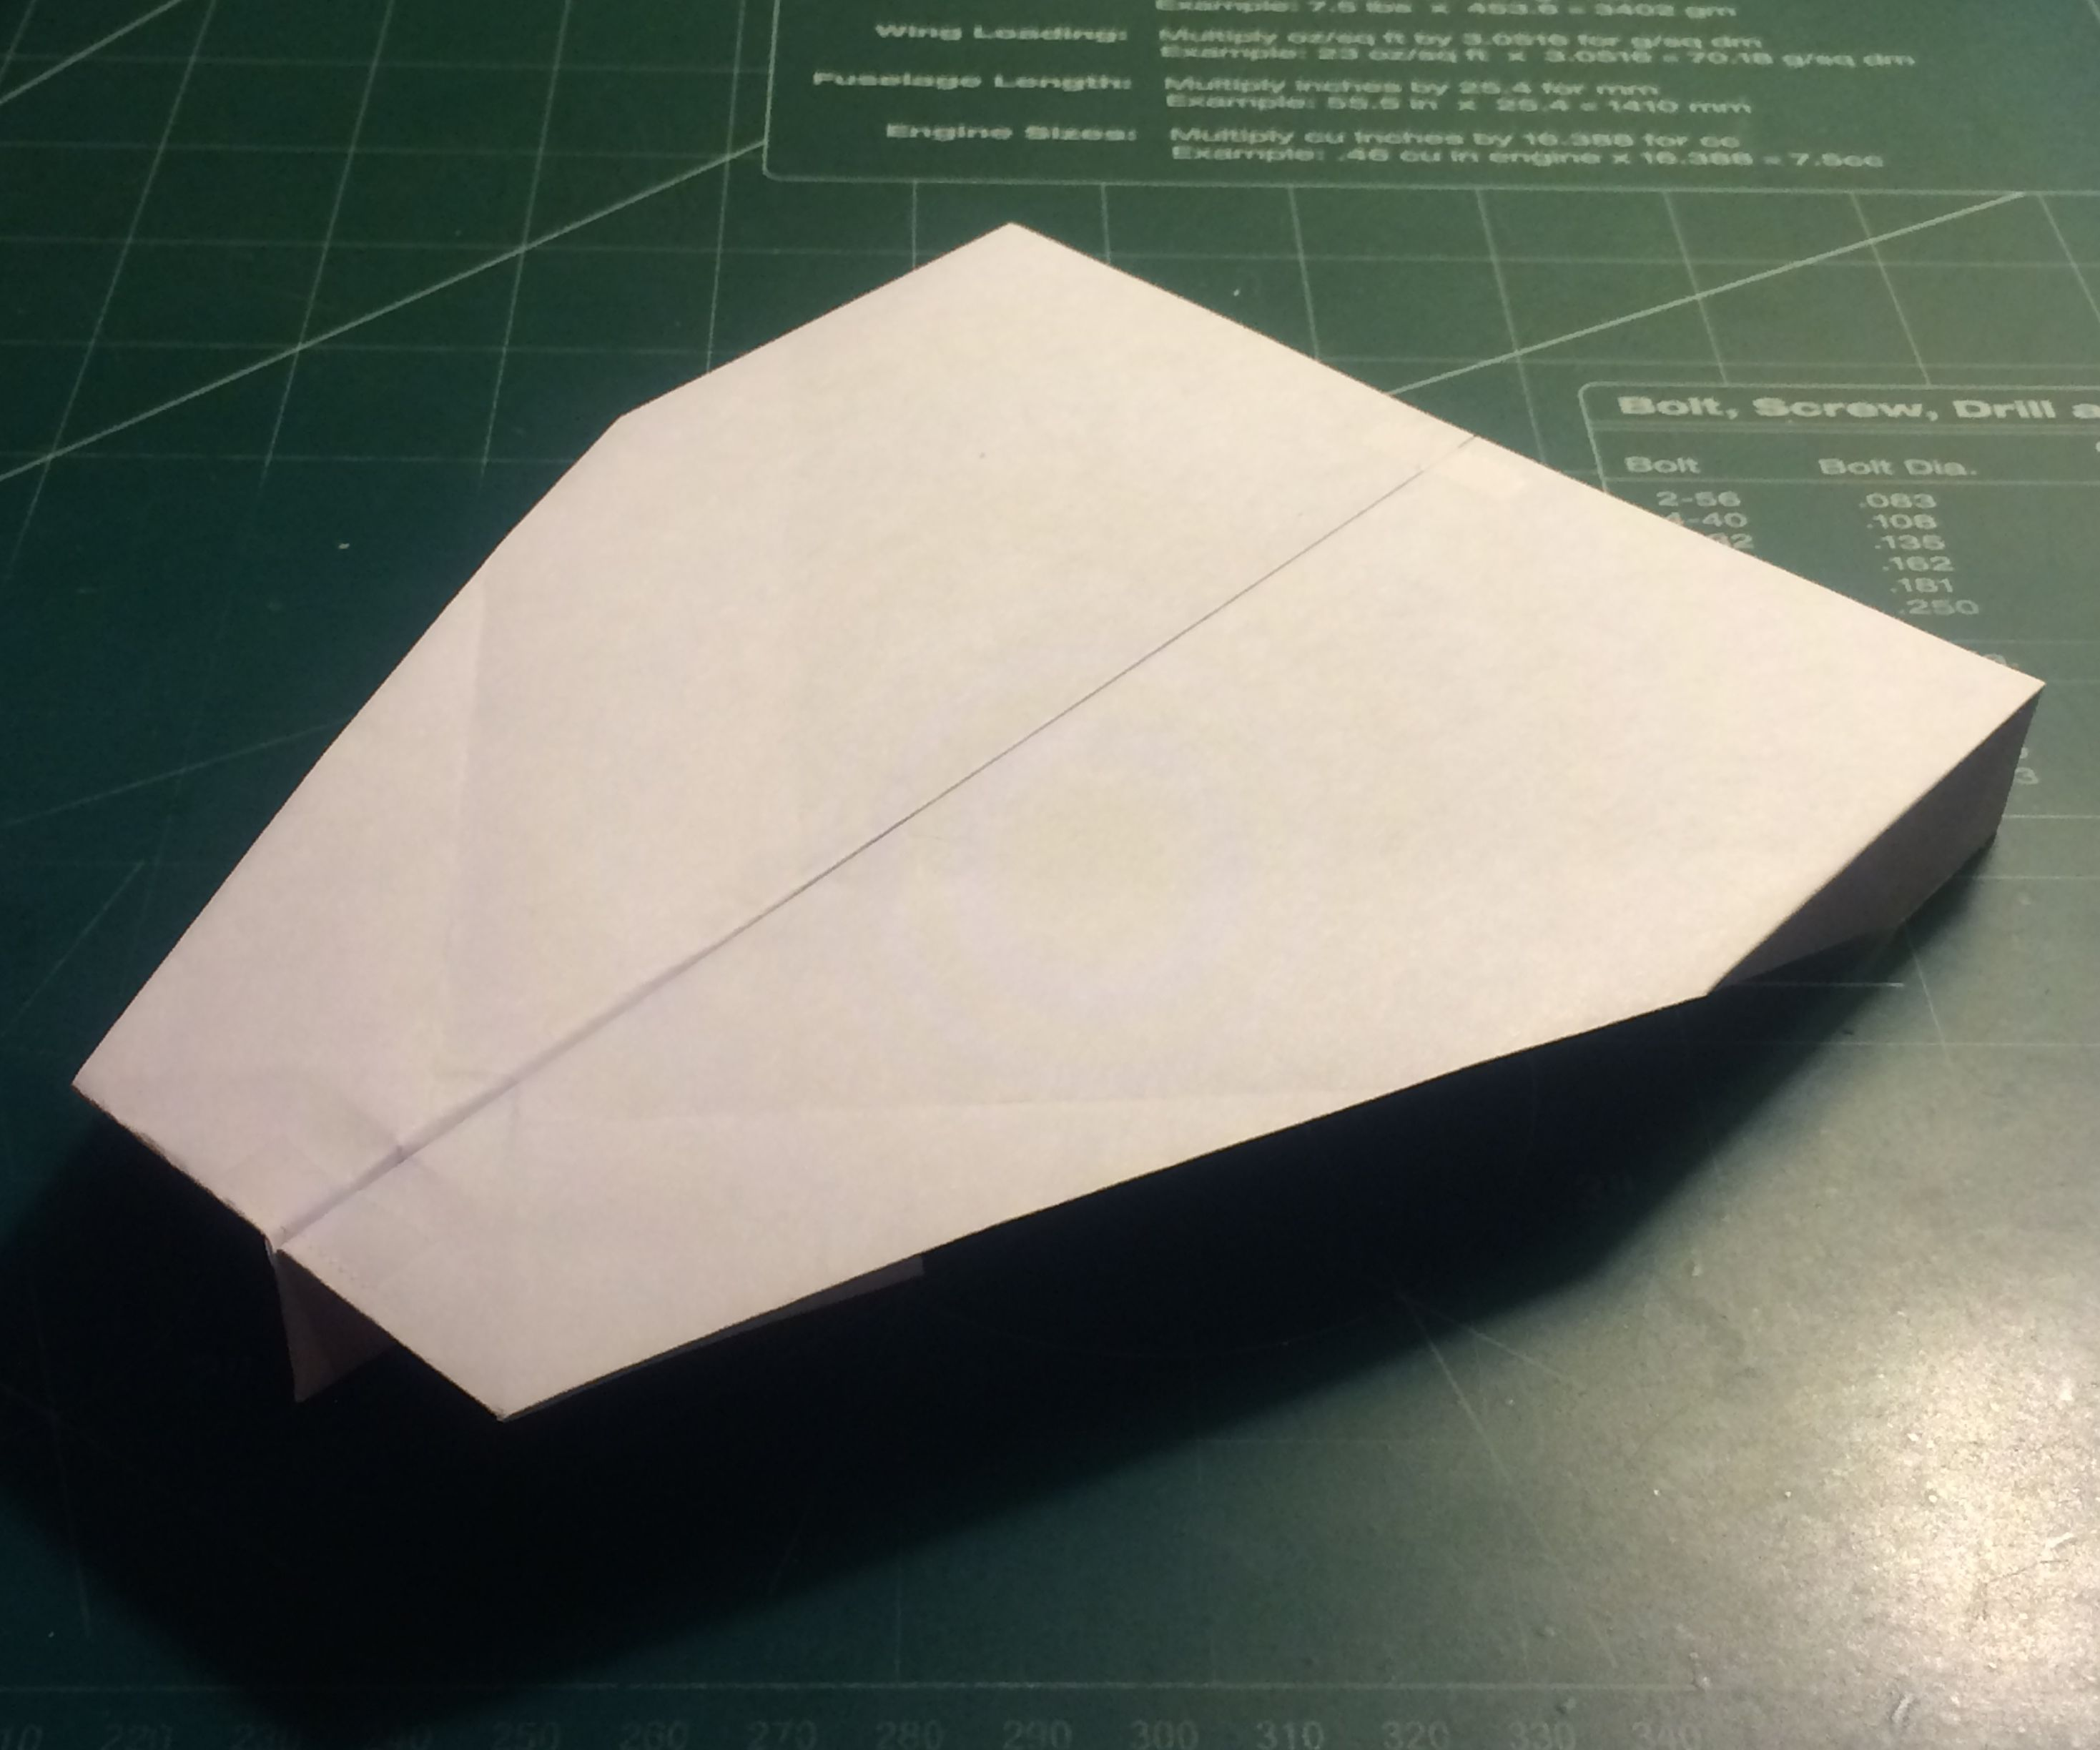 How To Make The Super Stratojagger Paper Airplane